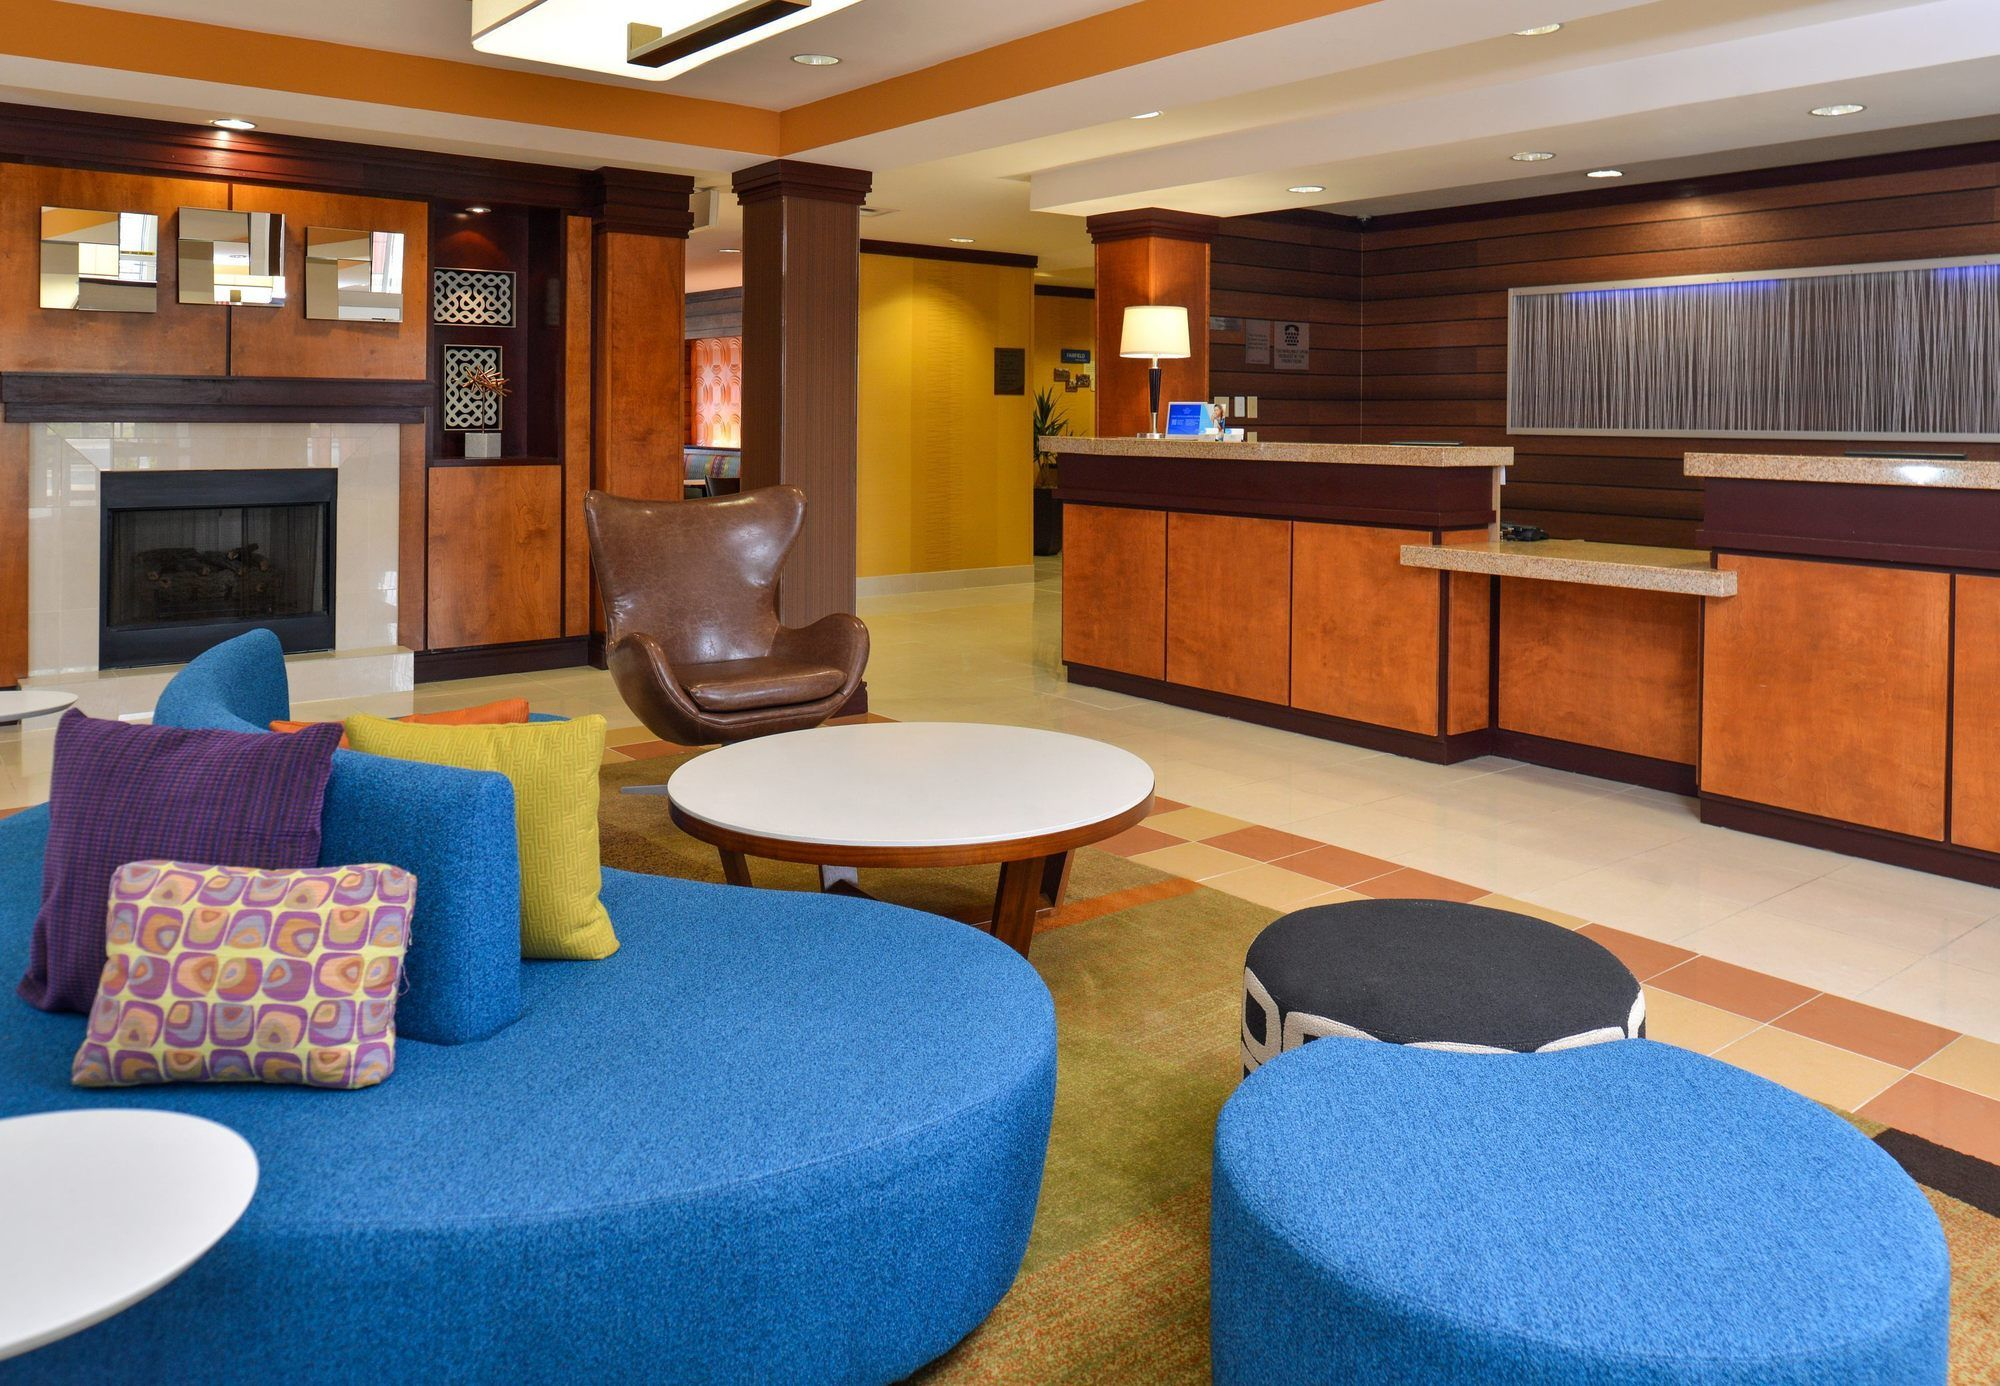 Fairfield Inn & Suites by Marriott Bessemer in Bessemer, AL